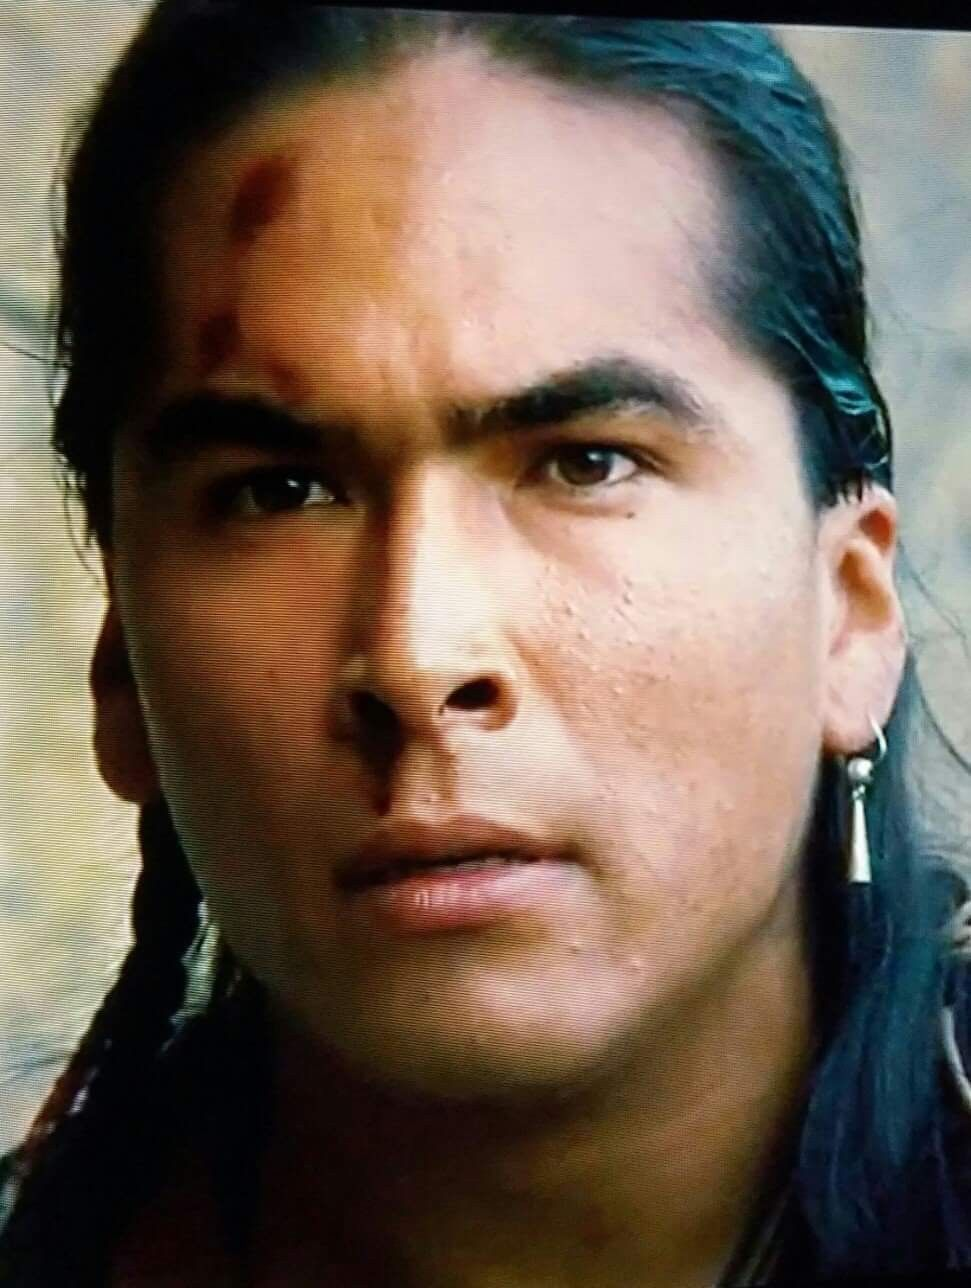 Eric Schweig In Last Of The Mohicans – The last of the mohicans (original title).